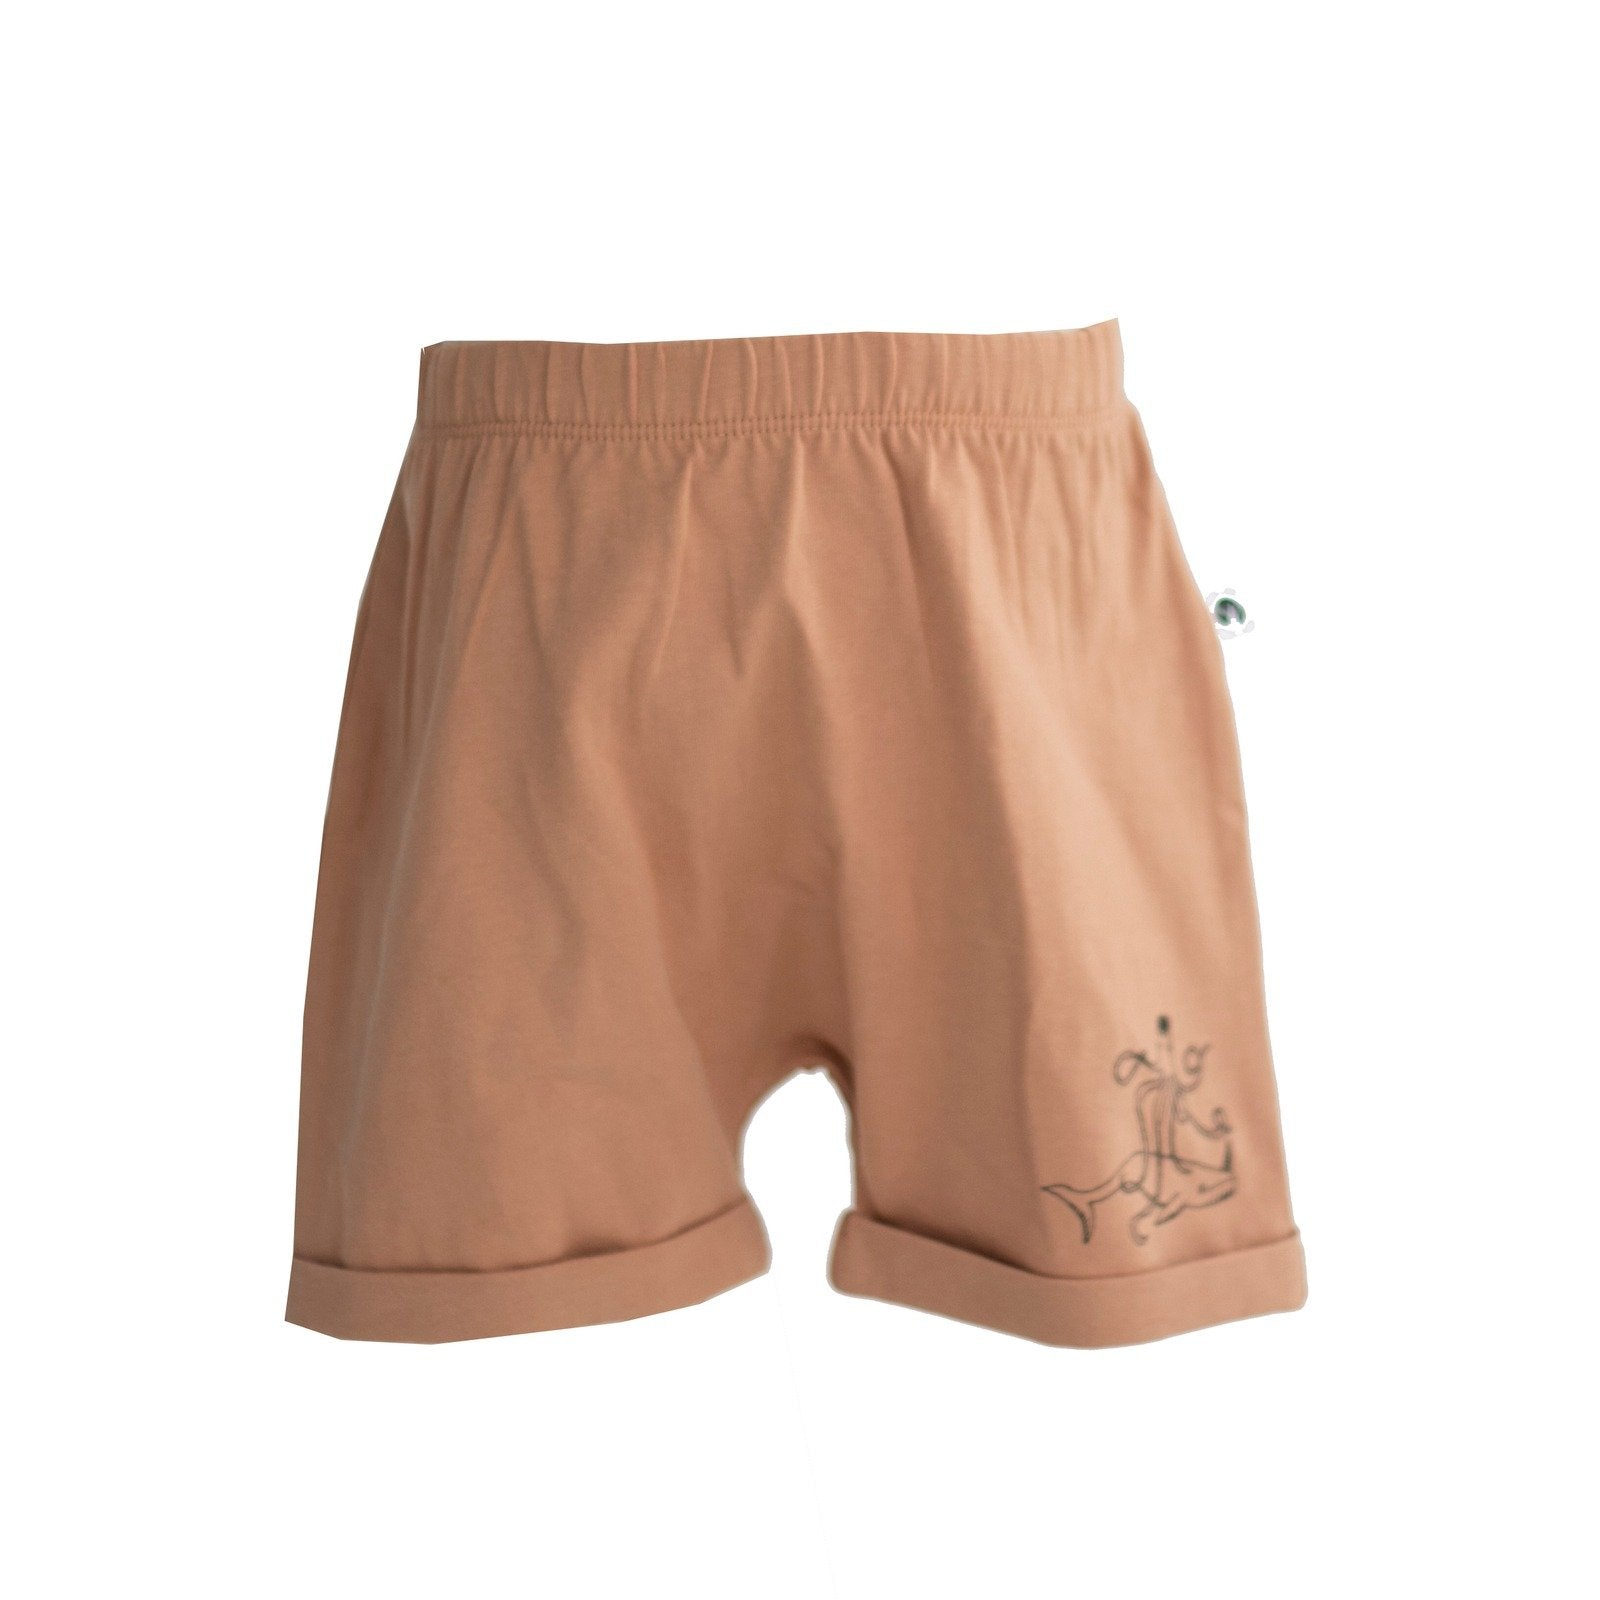 Burrow & Be Ocean Creatures Classic Shorts